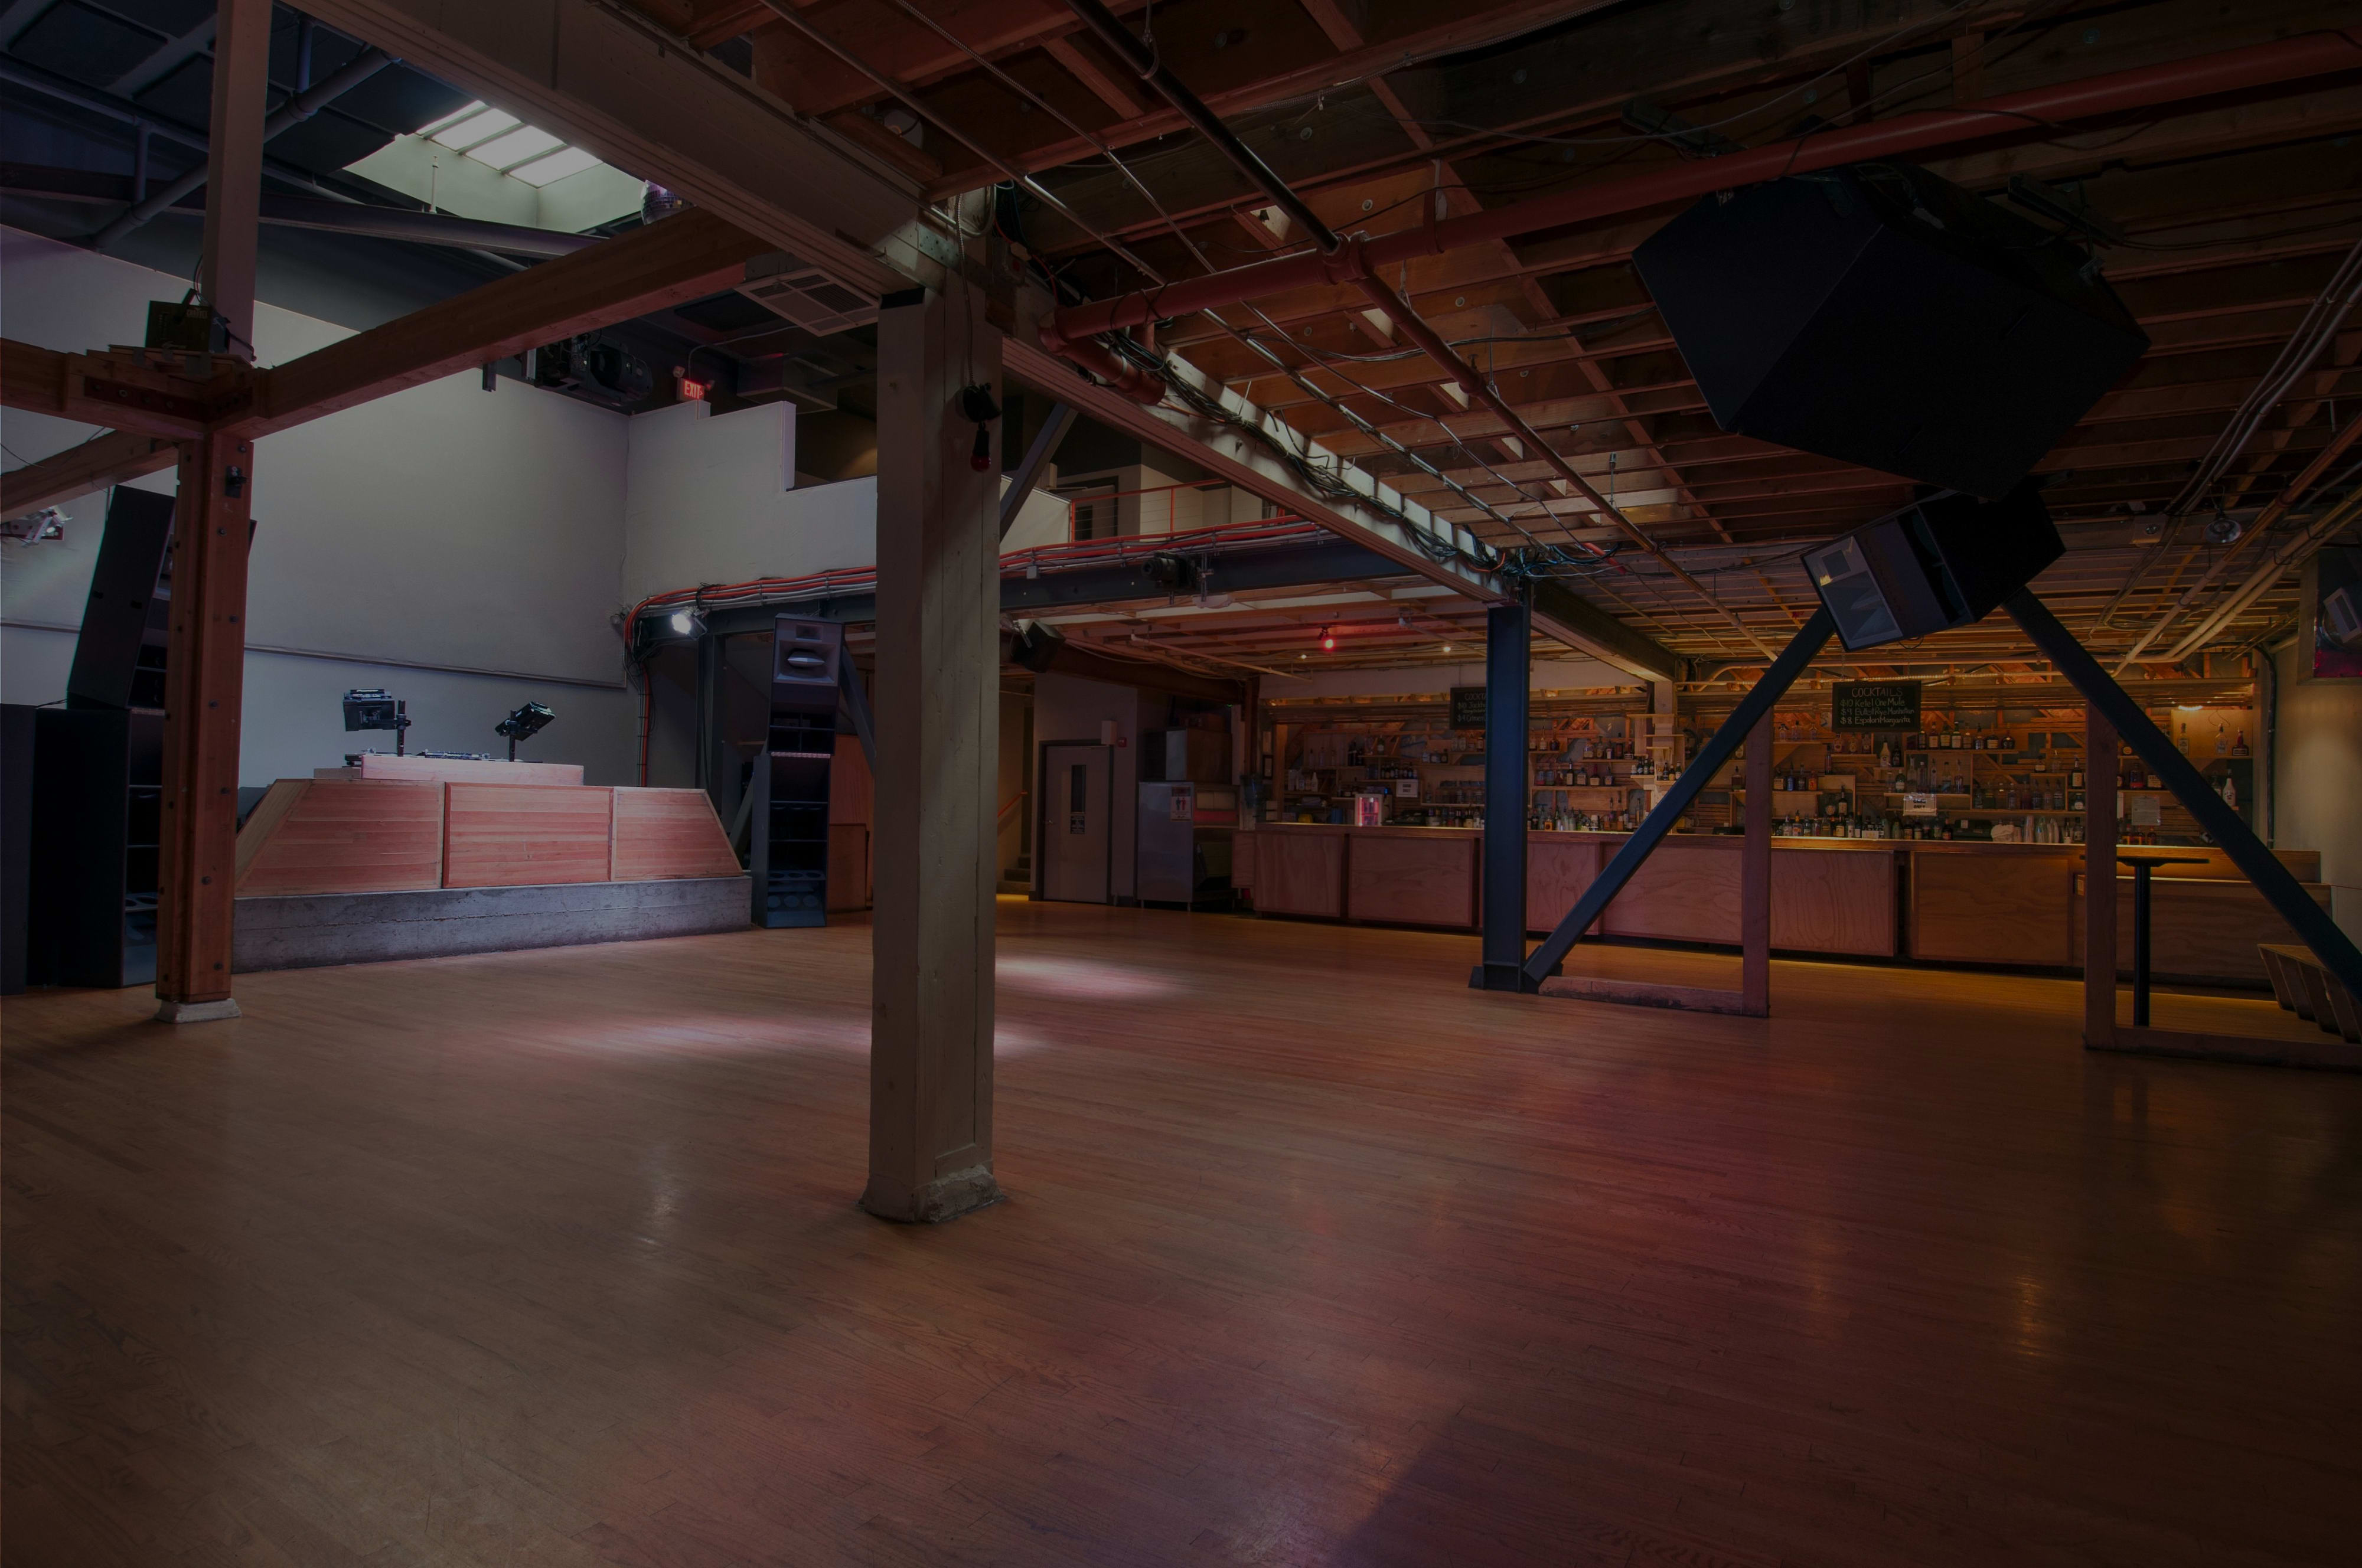 Unique dance party venues for rent Seattle WA Peerspace